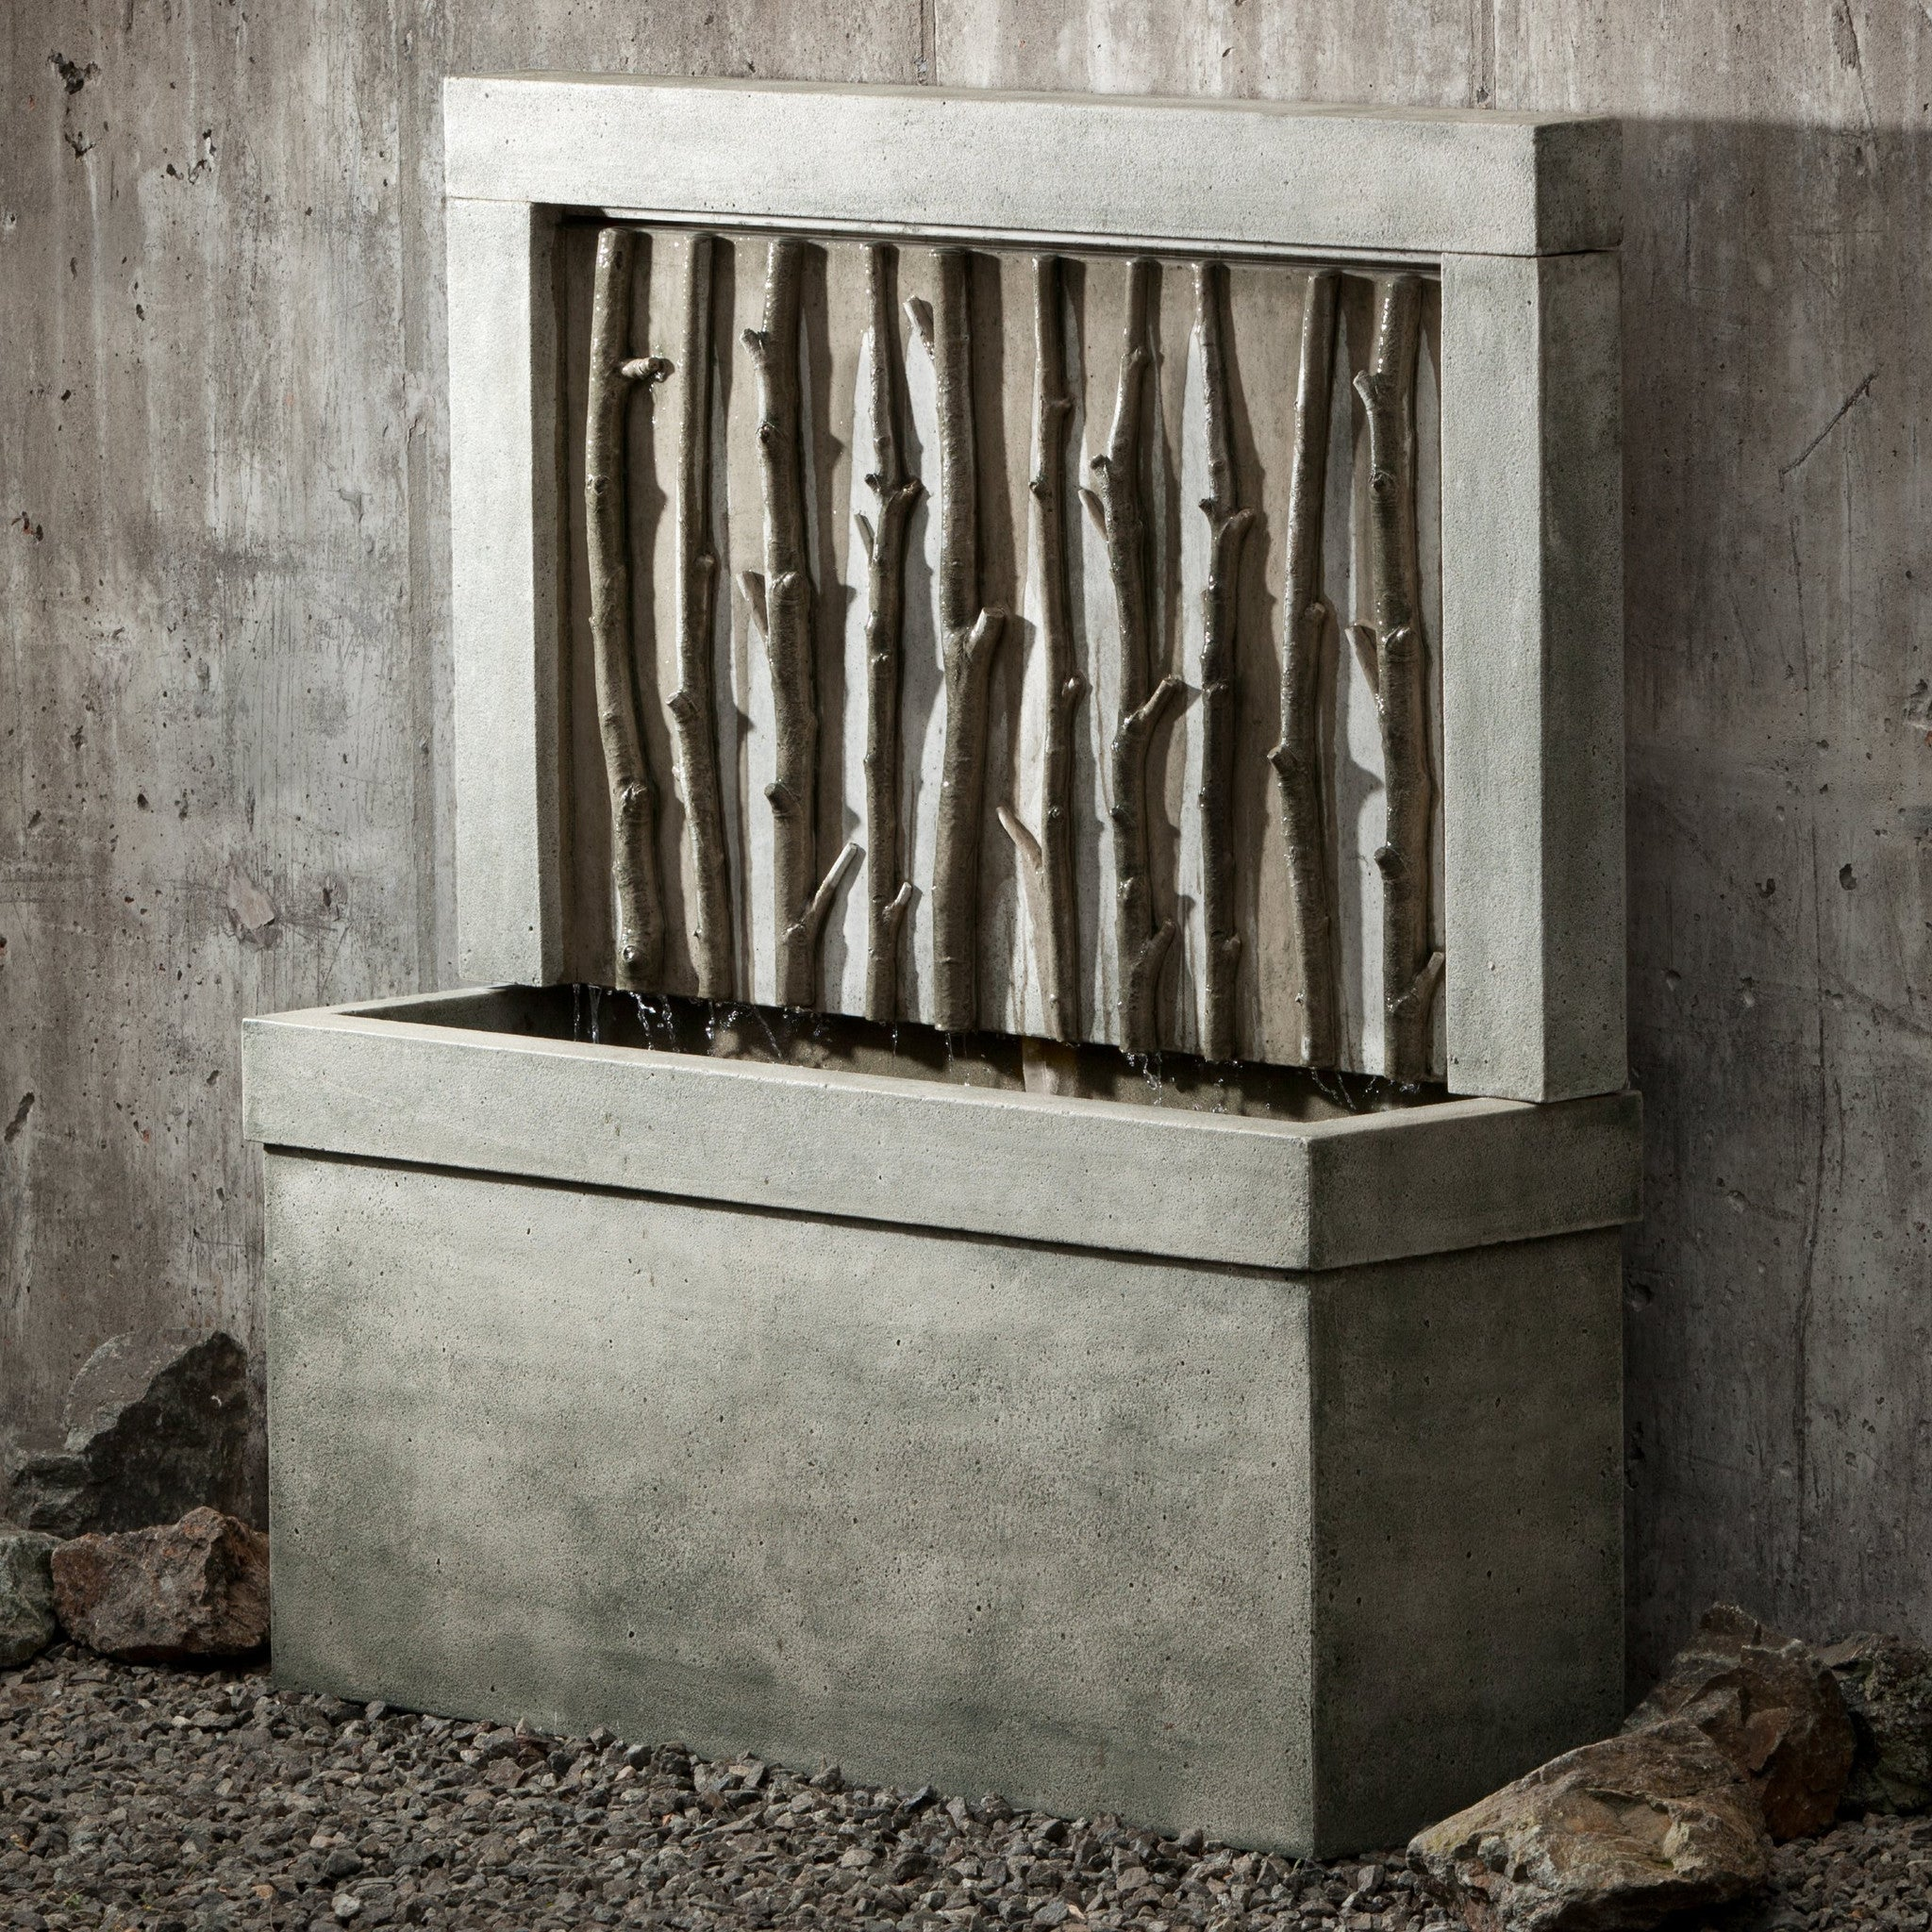 Birches Outdoor Water Fountain - Soothing Walls